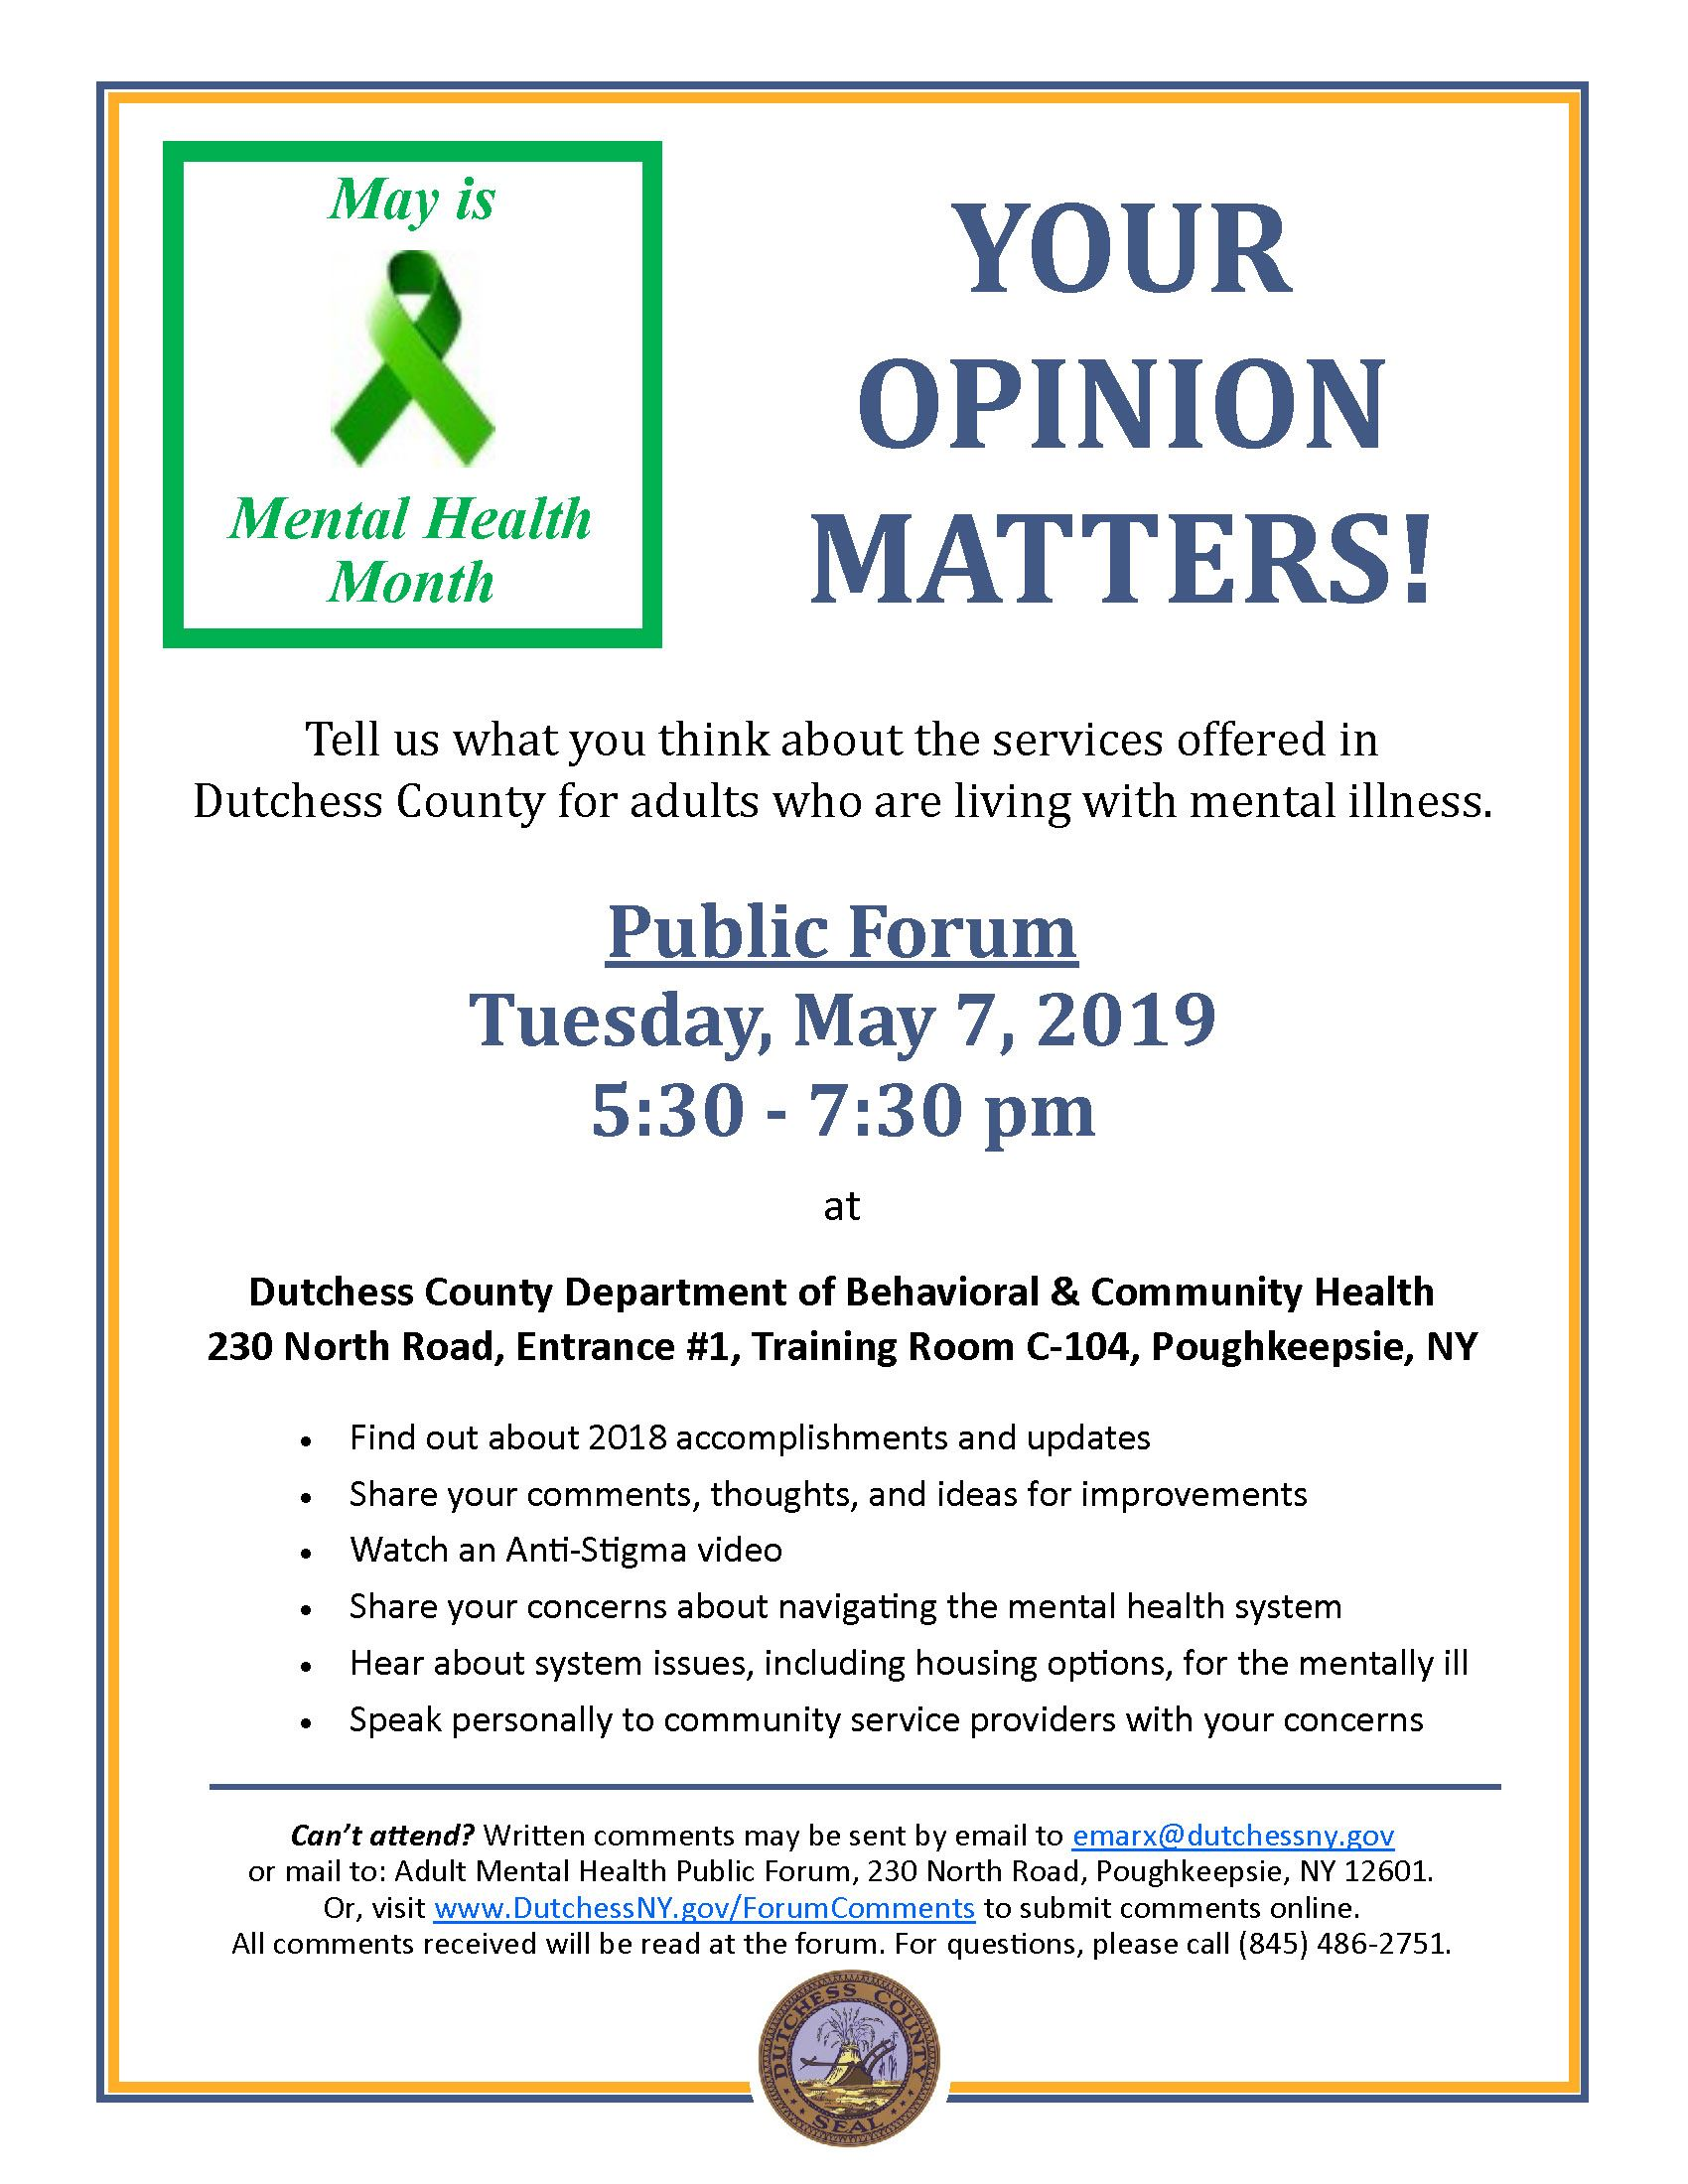 2019 Adult Mental Health Public Forum Flyer